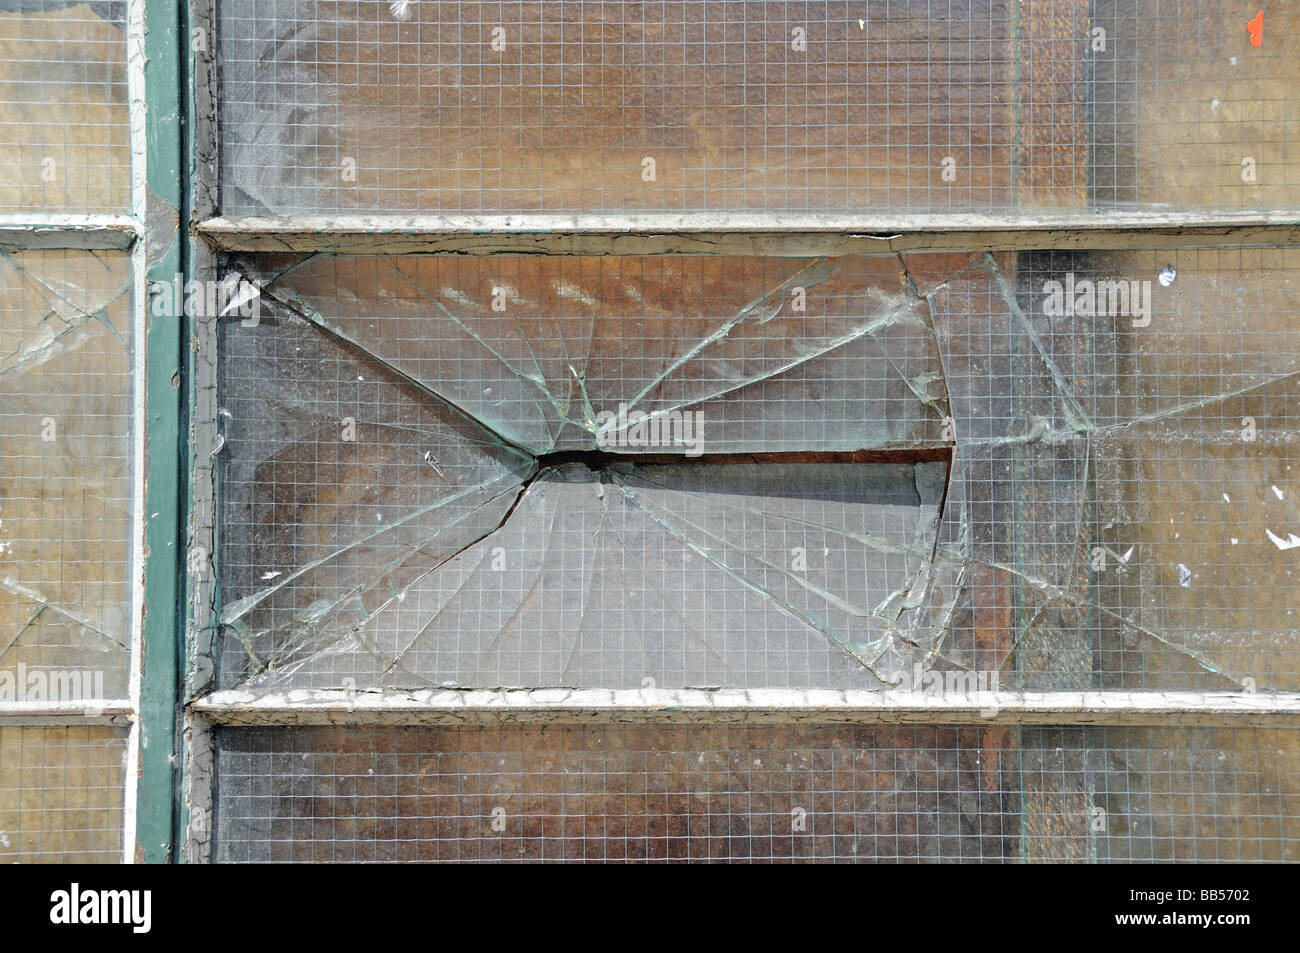 Broken window Hackney England UK - Stock Image